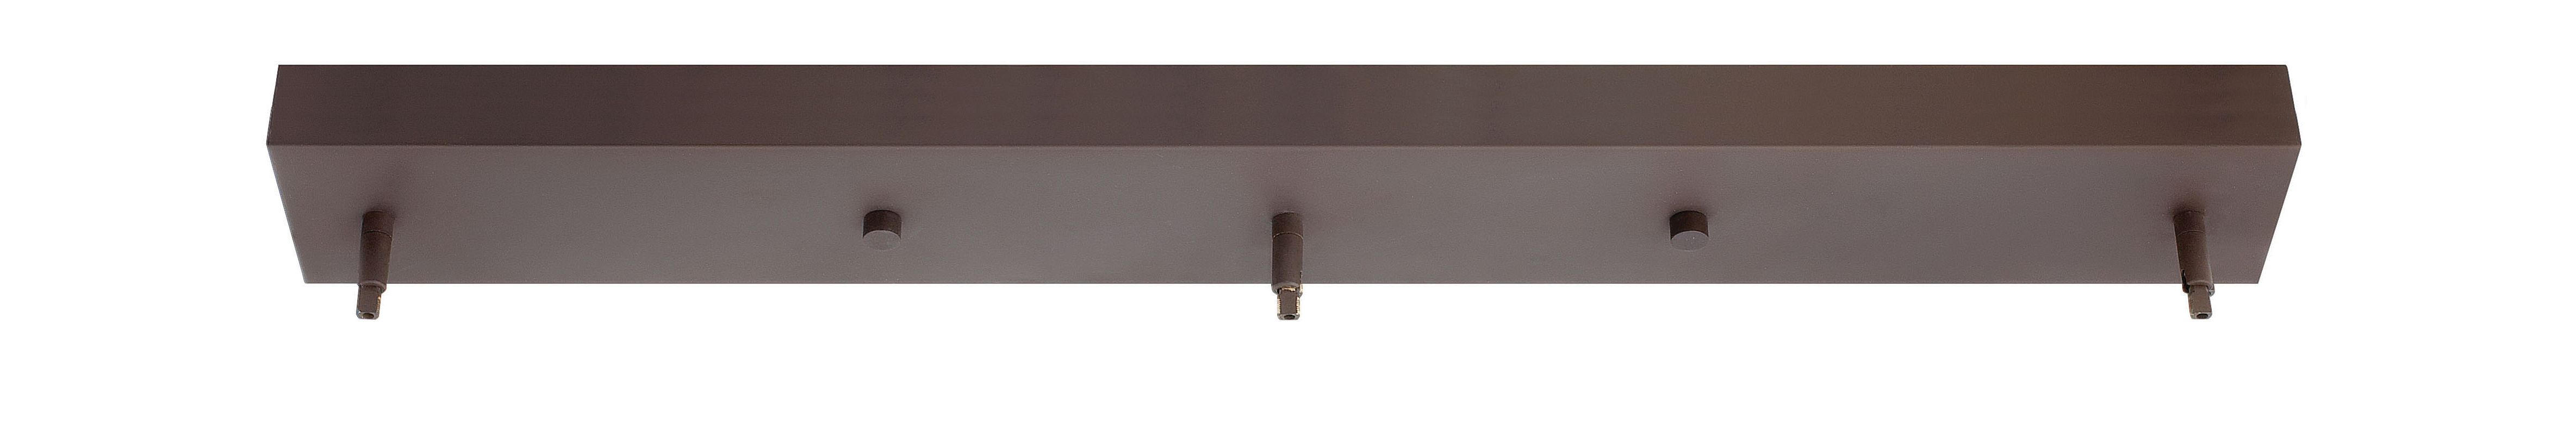 Hinkley Lighting 83669 Rectangular 3 Pendant Canopy Adaptor Oil Rubbed Sale $89.00 ITEM: bci2635641 ID#:83669OZ UPC: 640665836677 :